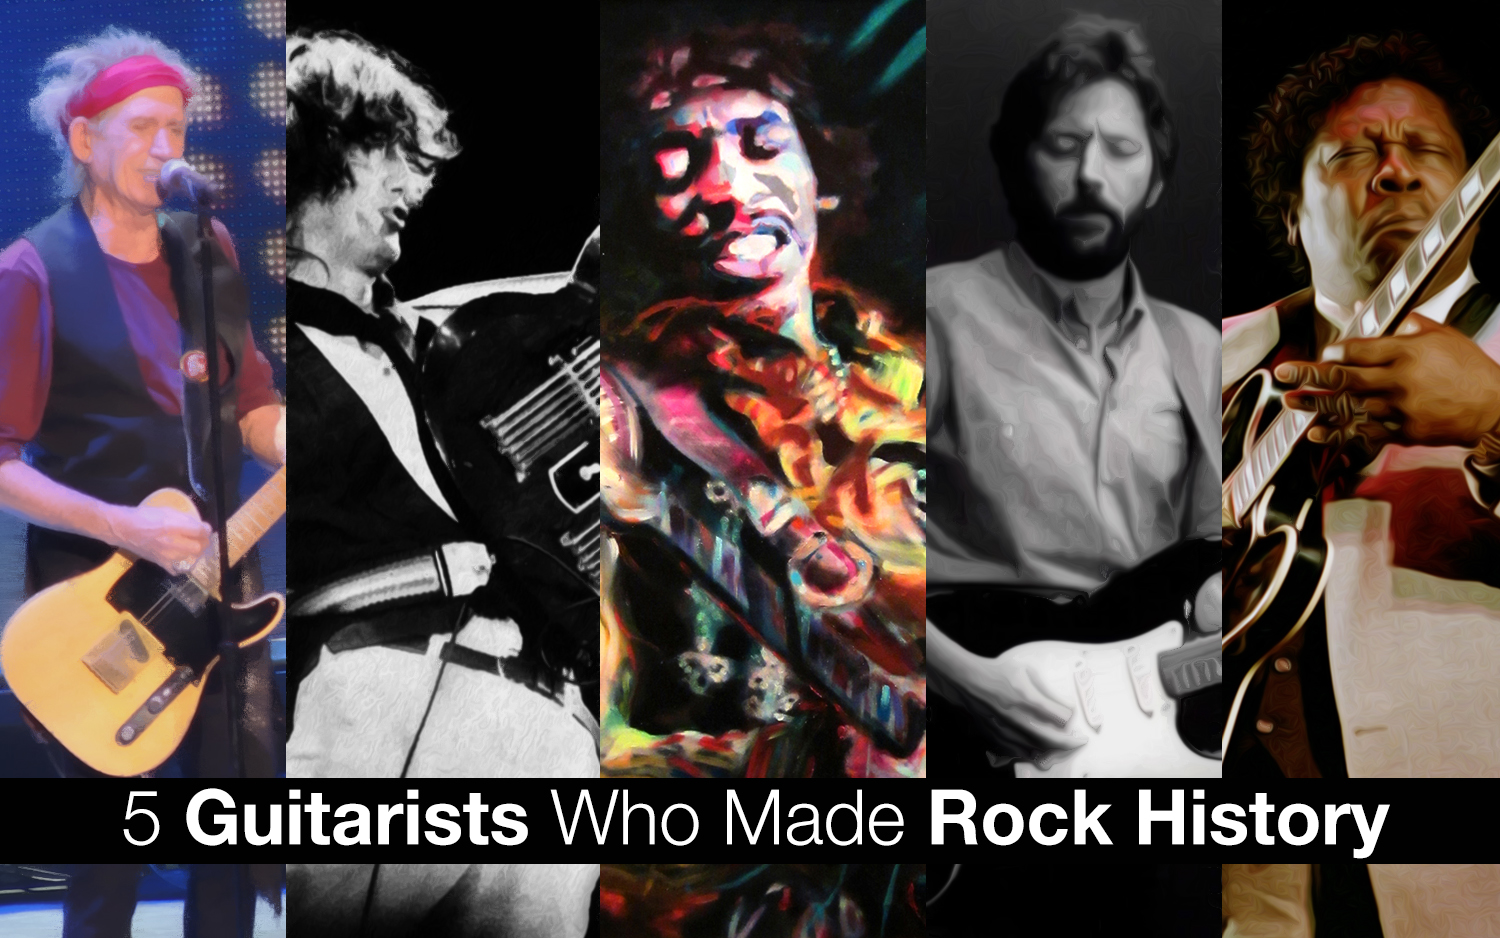 5 Guitarists Who Made Rock History